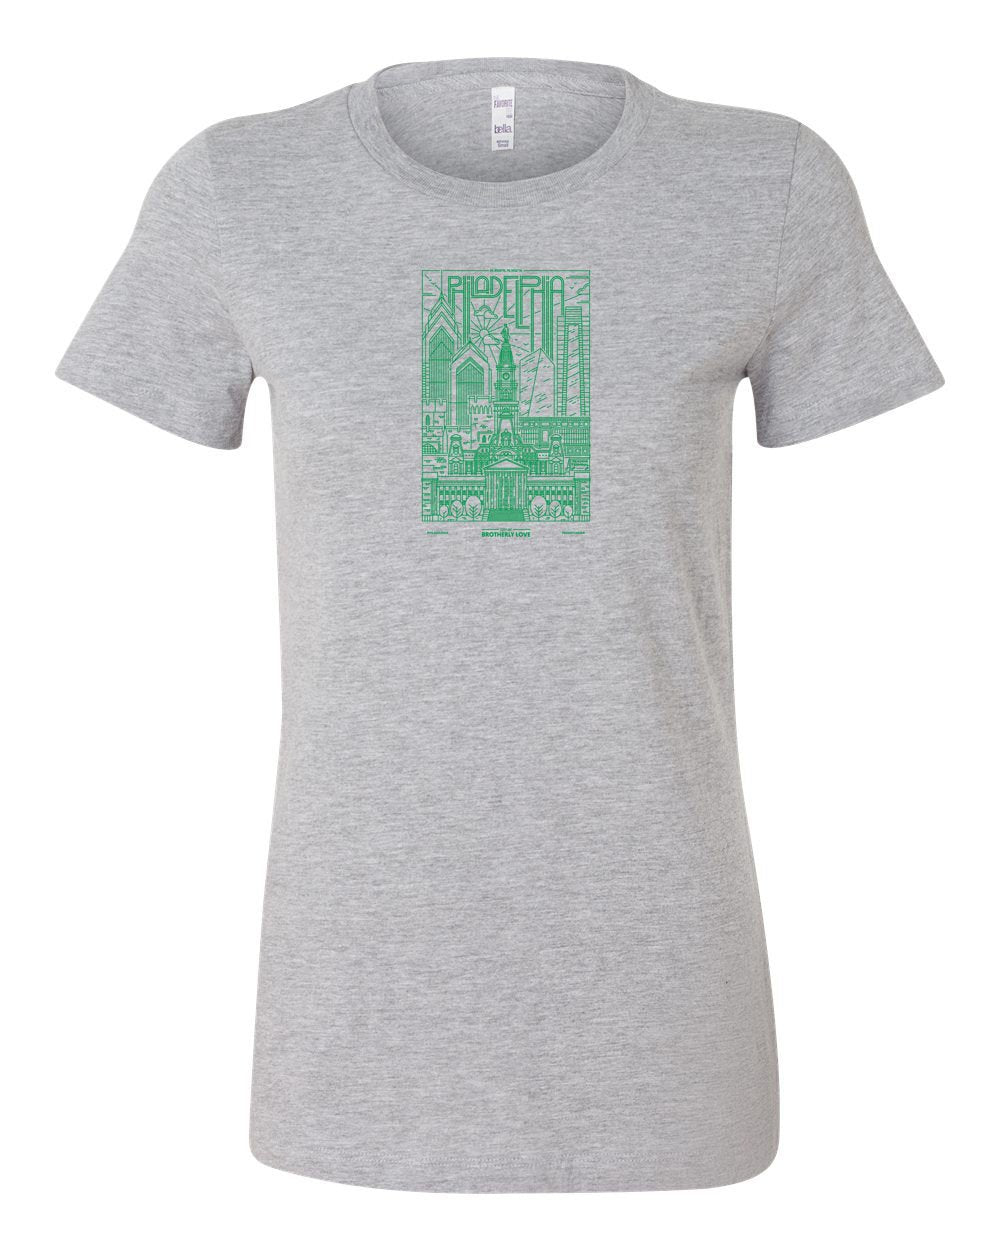 Philadelphia Skyline V2 (Green Ink) LADIES Junior-Fit T-Shirt